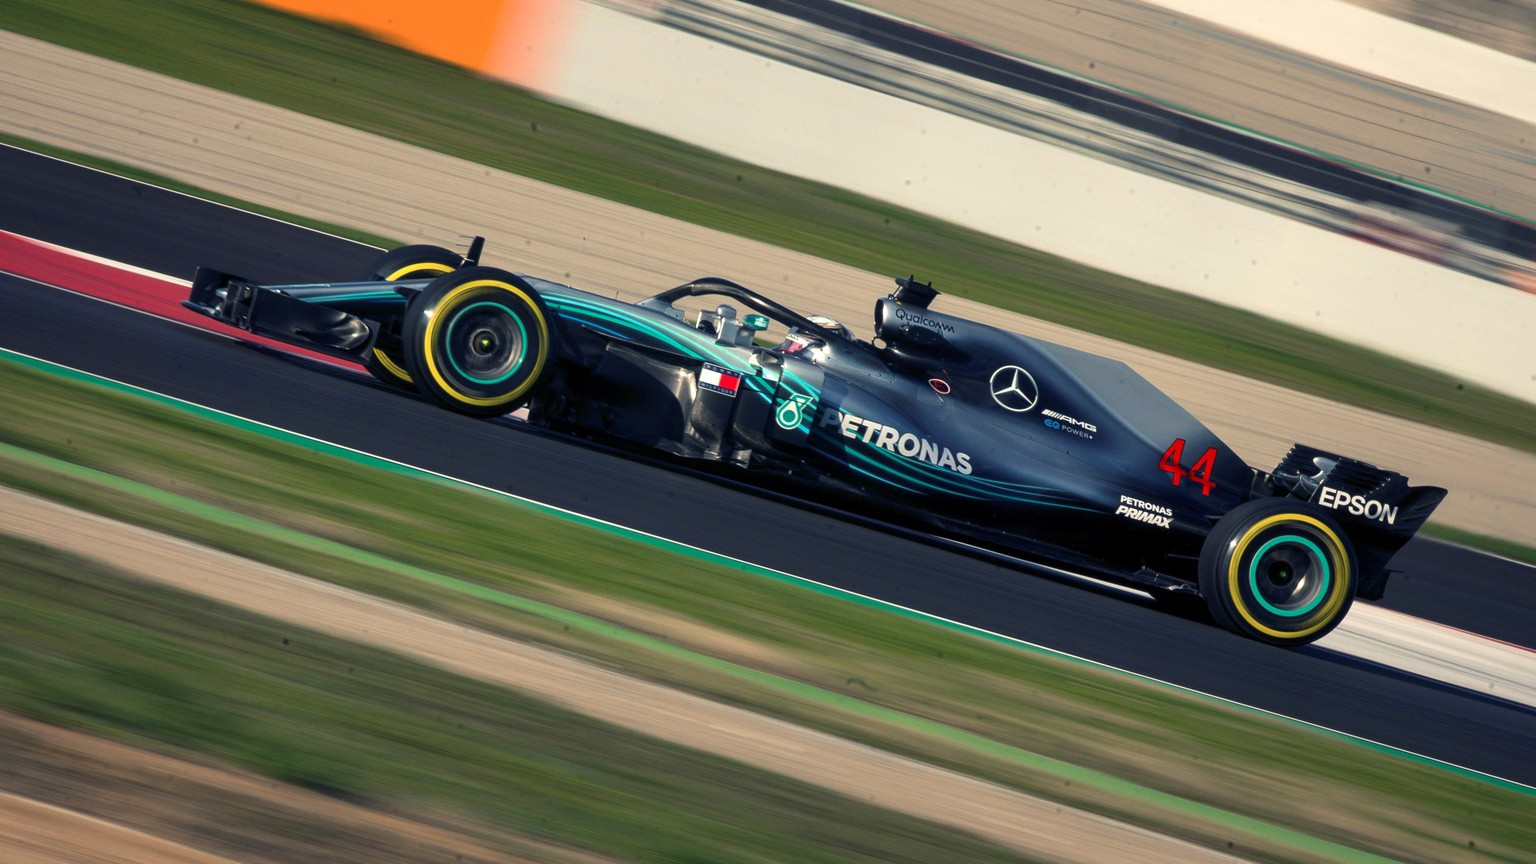 epa06585138 British Formula One driver Lewis Hamilton of Mercedes in action during the second Formula One pre-season test sessions at Circuit de Barcelona-Catalunya race track in Montmelo, Spain, 06 March 2018. The testings take place from 06 to 09 March 2018.  EPA/Enric Fontcuberta